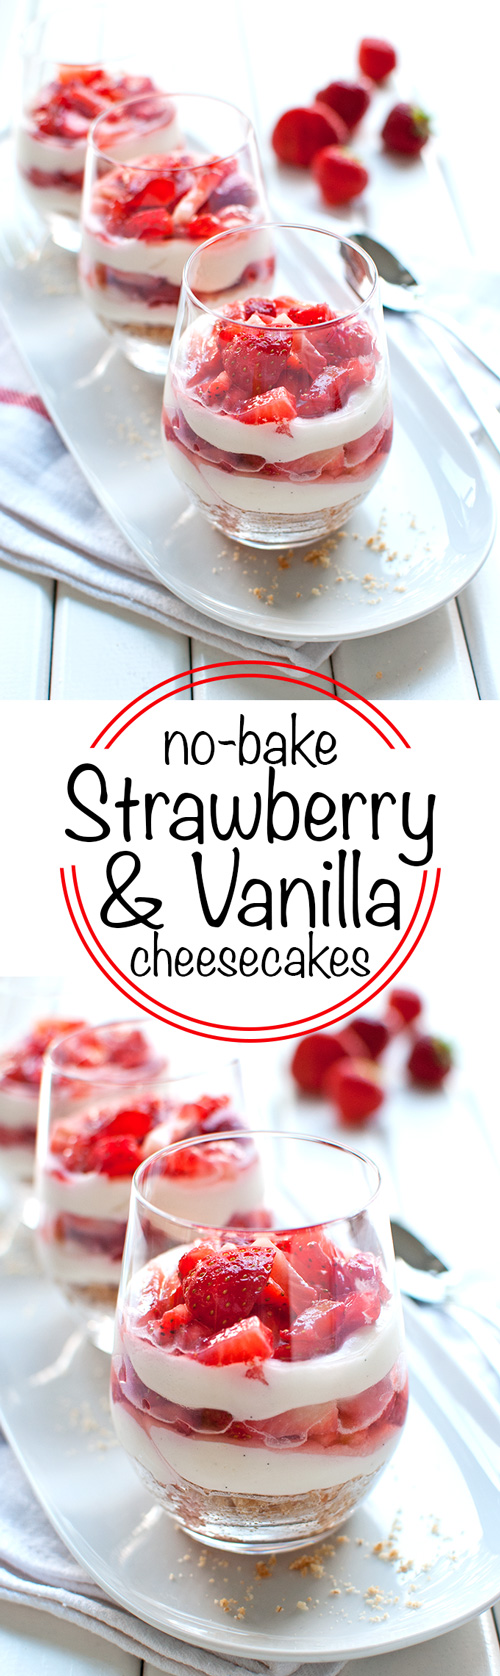 No-Bake Vanilla Strawberry Cheesecakes - These layered individual cheesecakes are super cute and taste amazing! | thetoughcookie.com